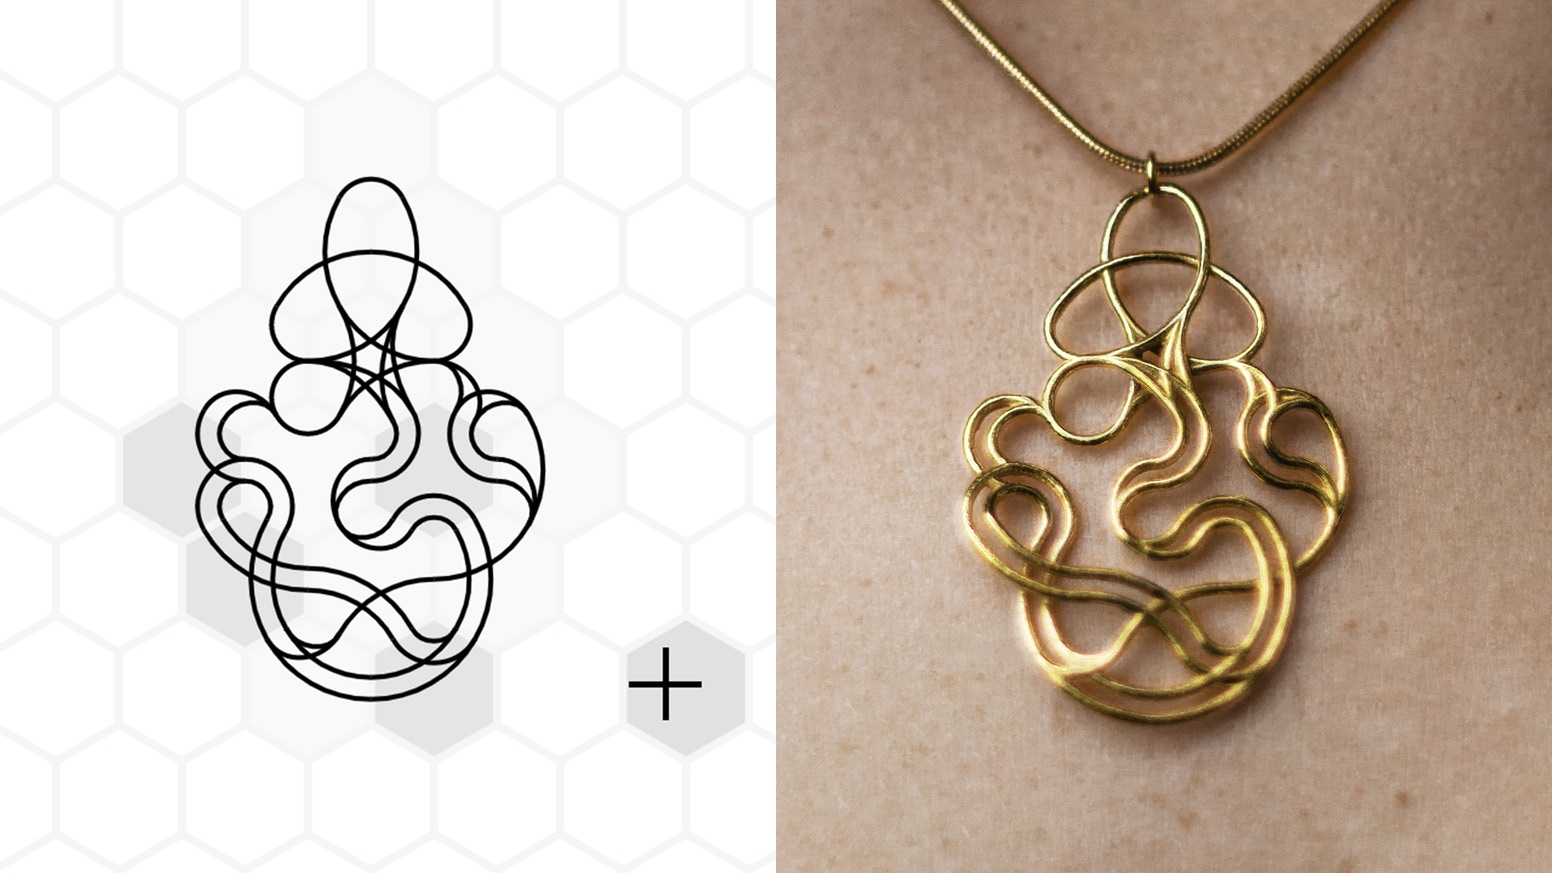 Design your own Sterling Silver or 18ct Gold pendants using this intuitive web app